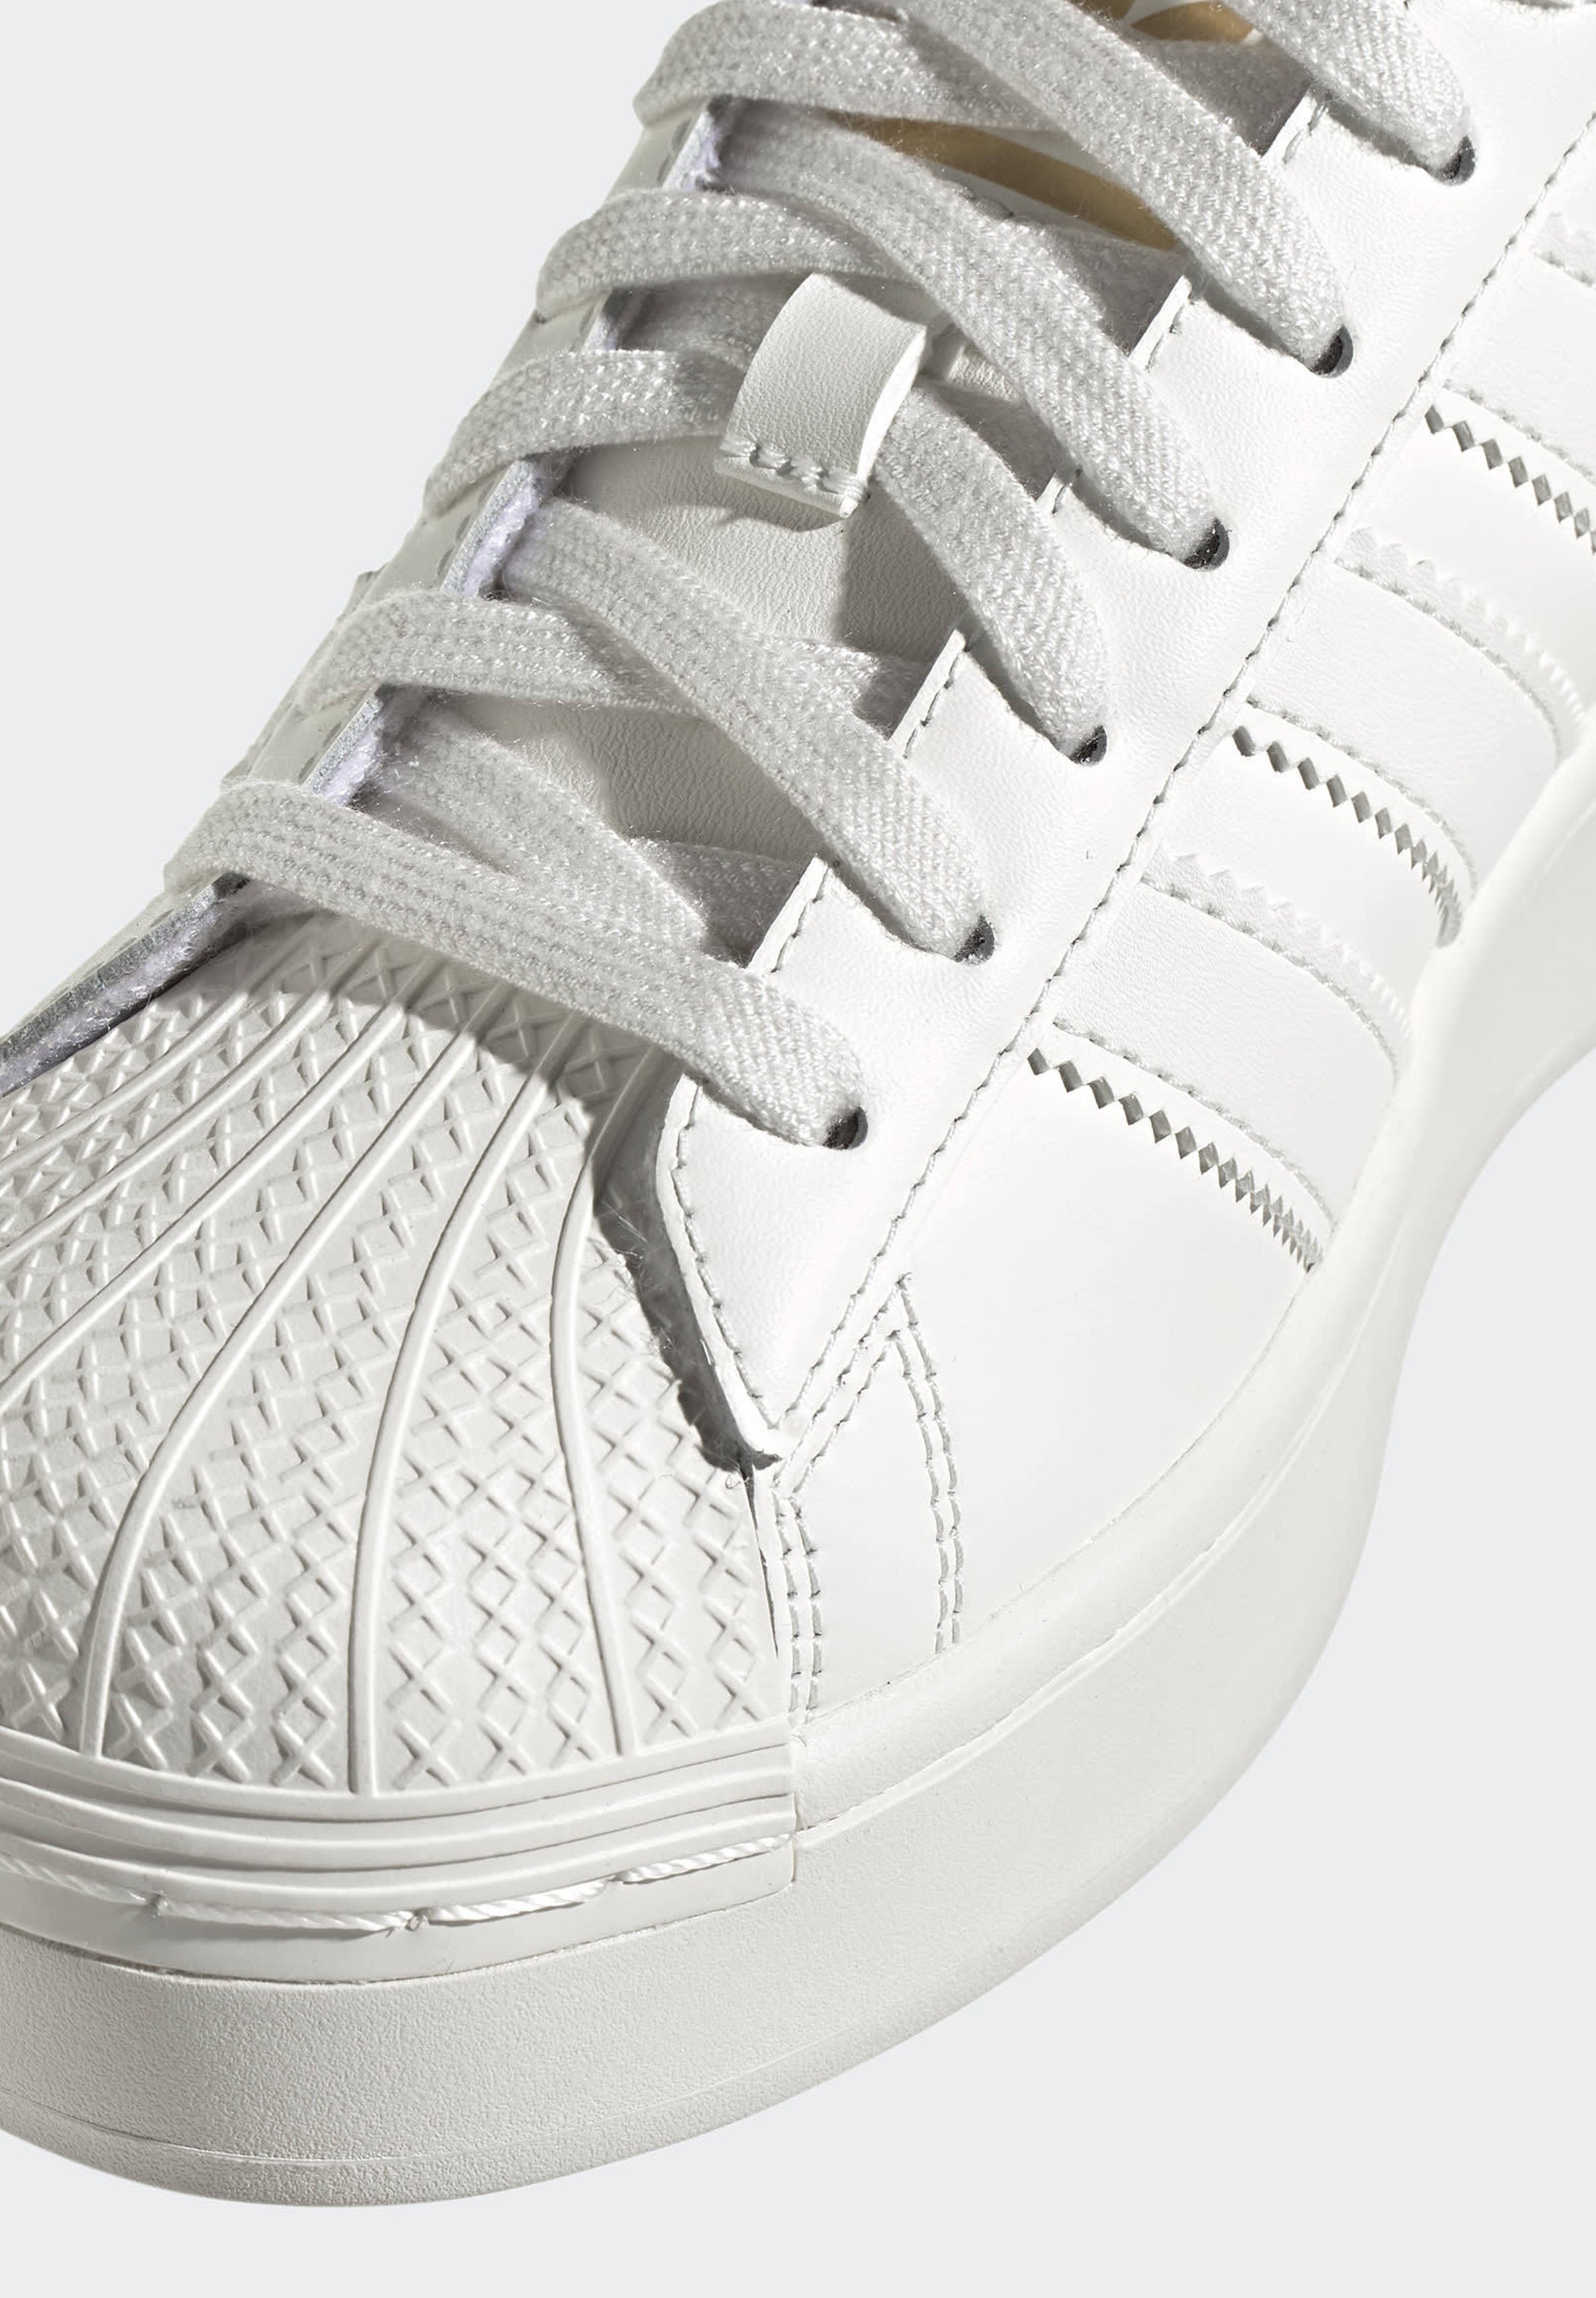 Adidas Originals Superstar Sports Inspired Shoes - Sneaker Low Cwhite/cwhite/goldmt/offwhite